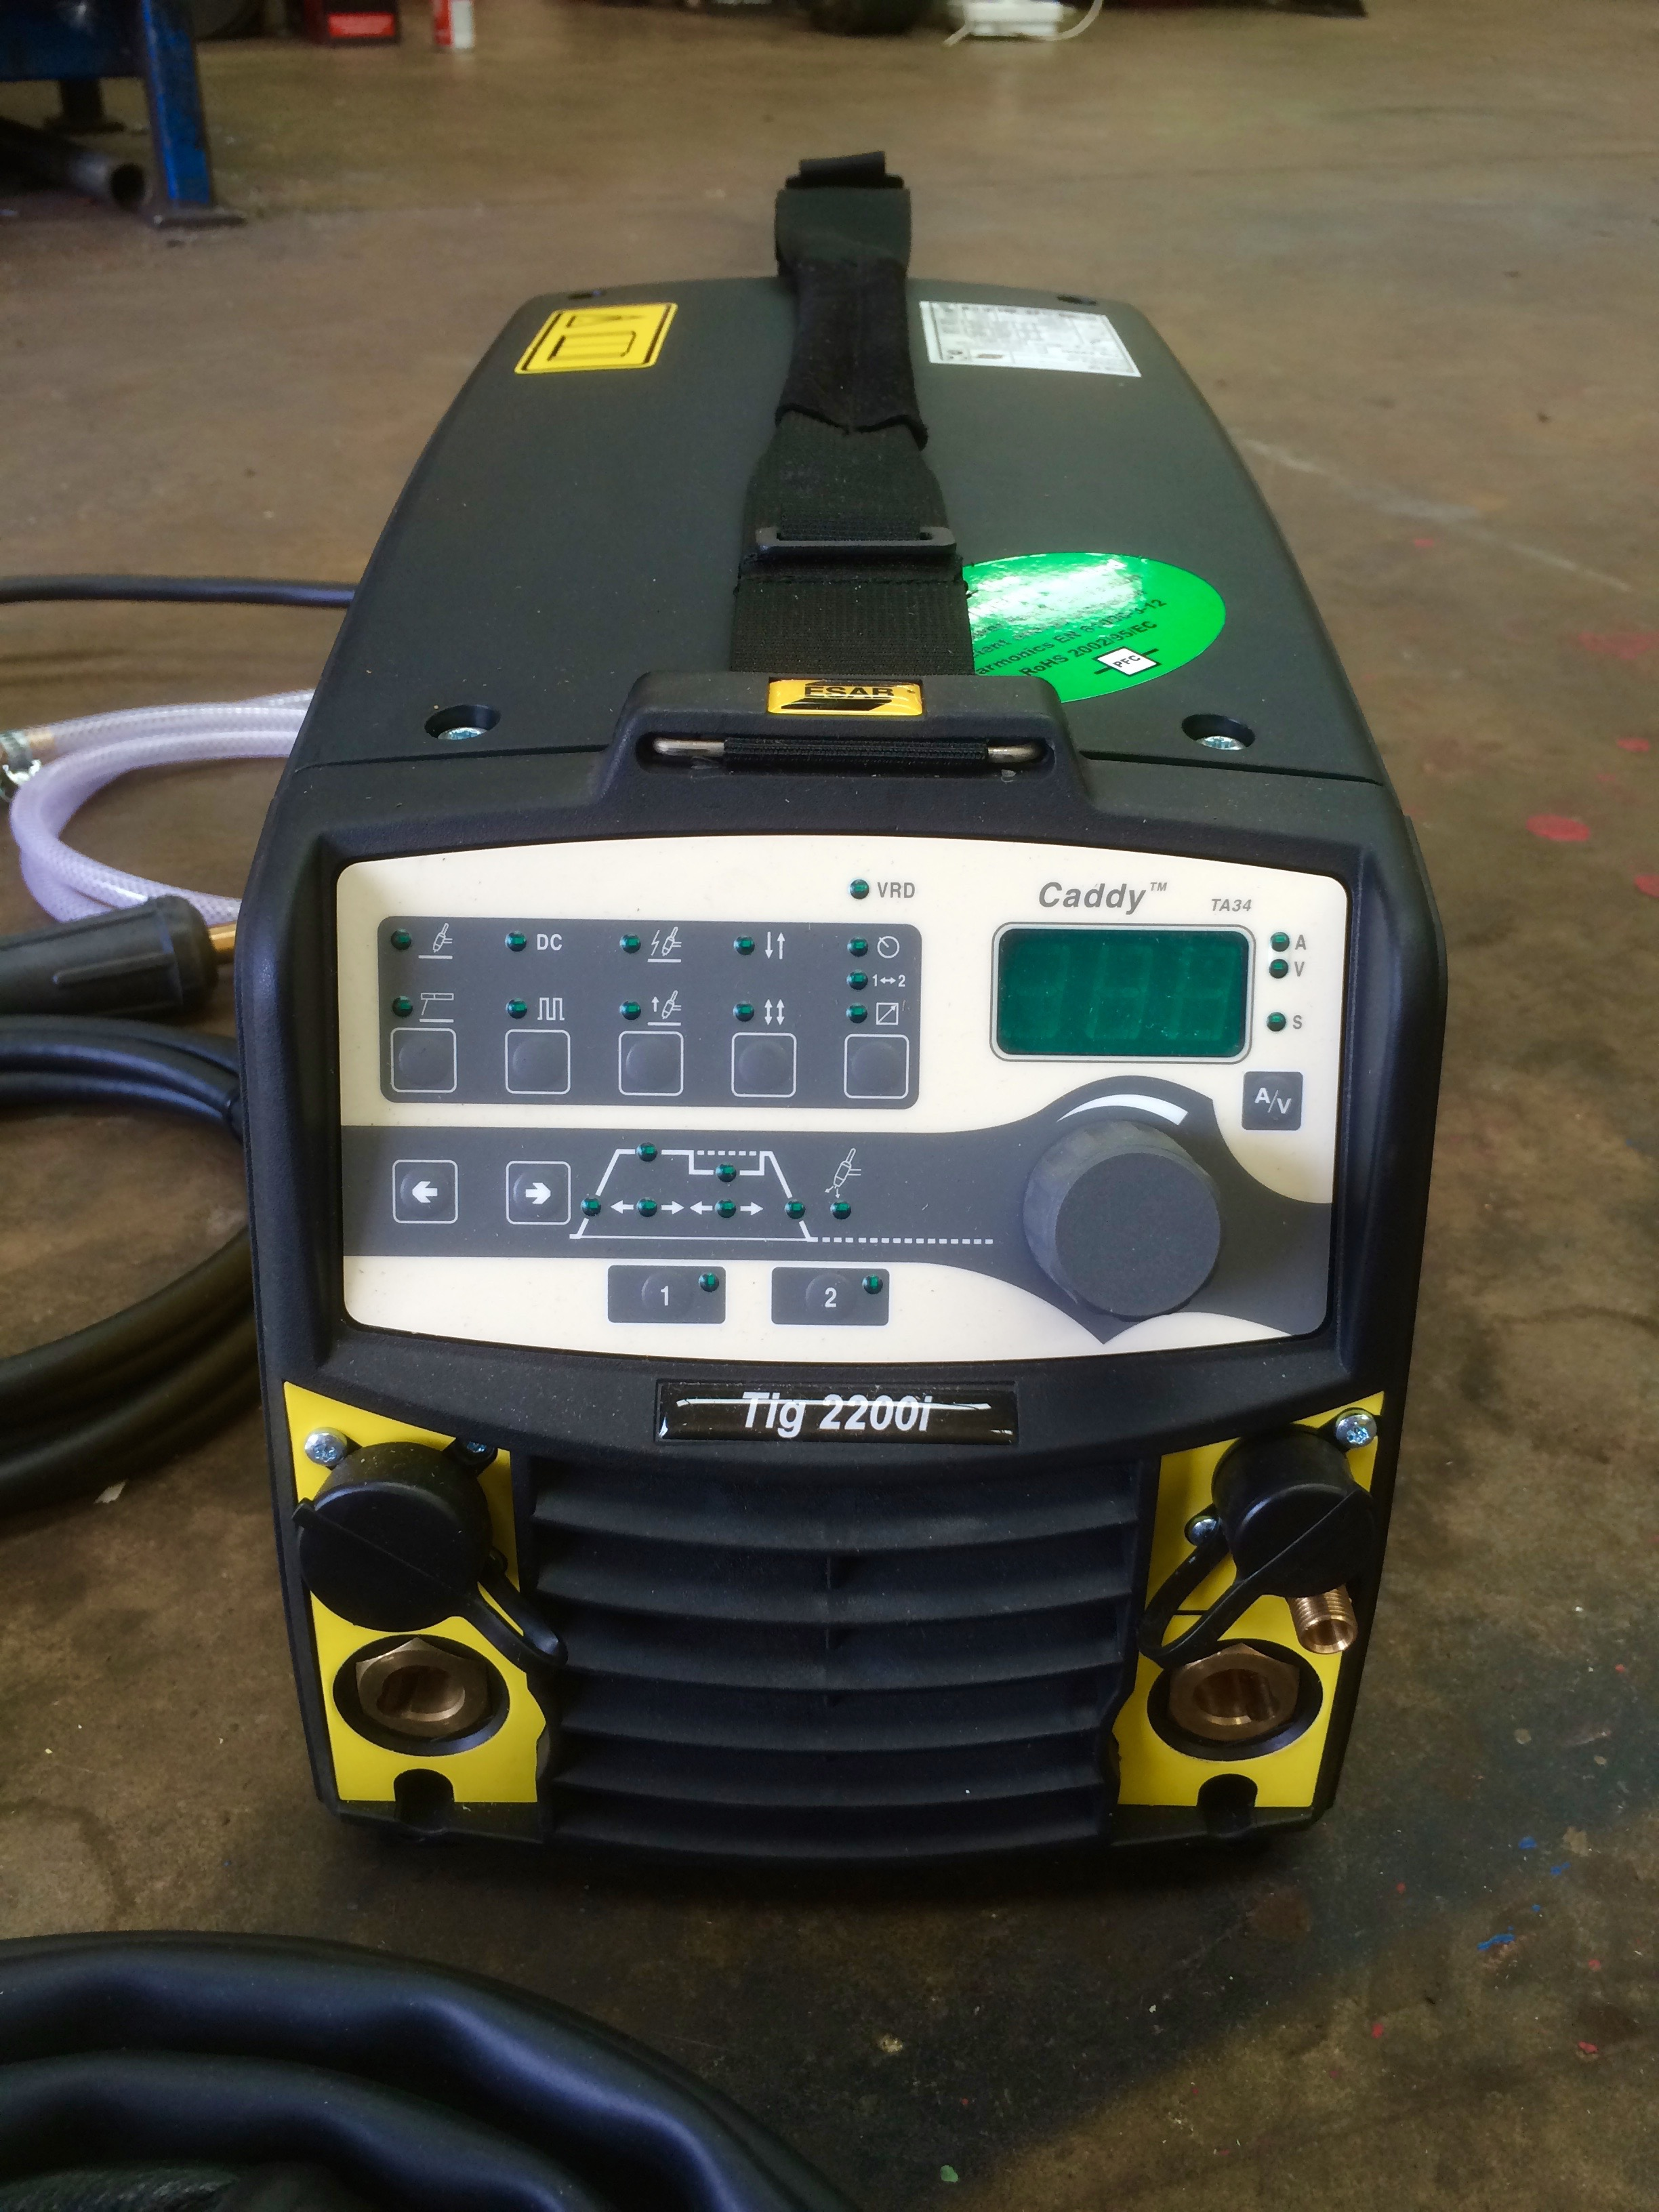 Esab Caddy Tig 2200i Ta33 Or Ta34 Pulsed Tig Welder